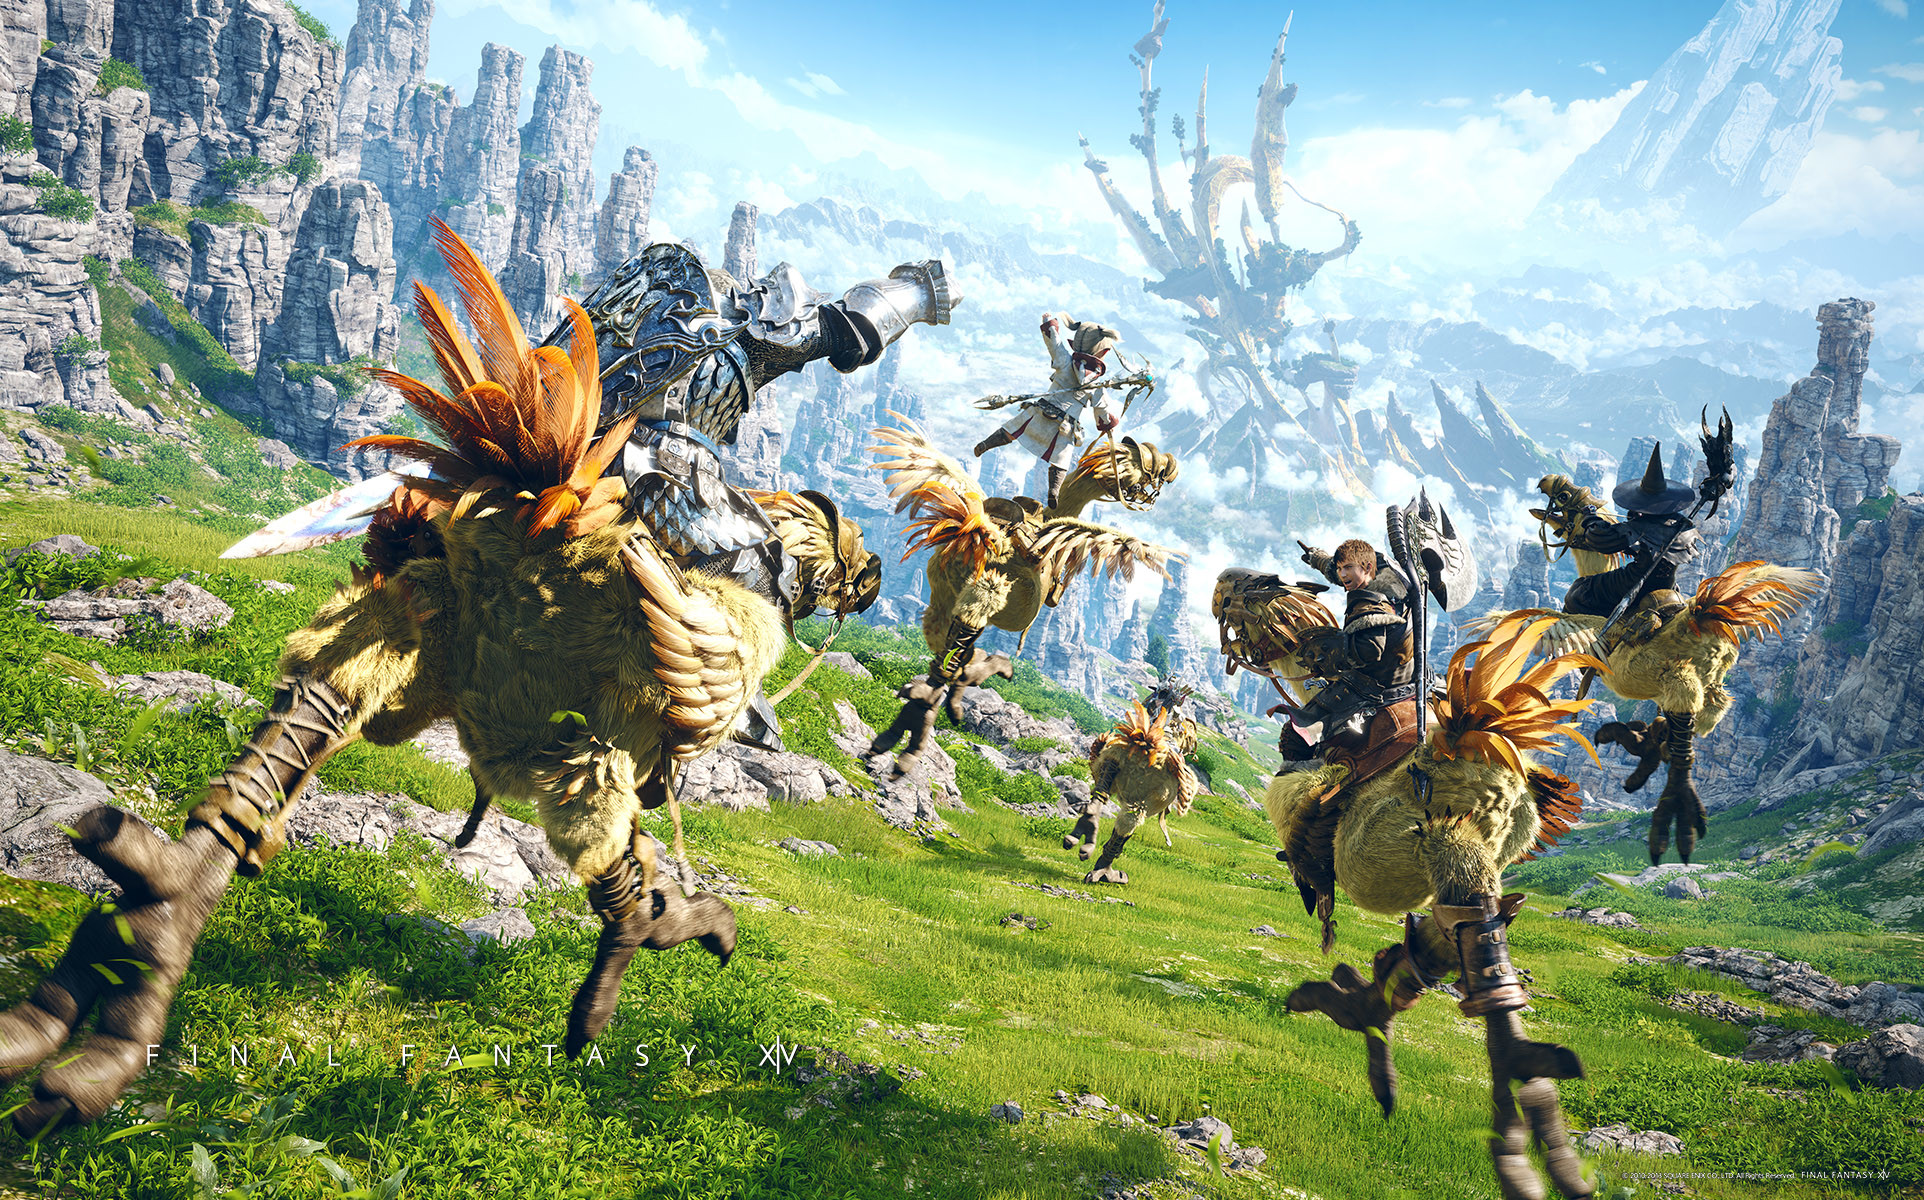 Res: 1924x1200, 12 Chocobo (Final Fantasy) HD Wallpapers | Hintergründe - Wallpaper Abyss